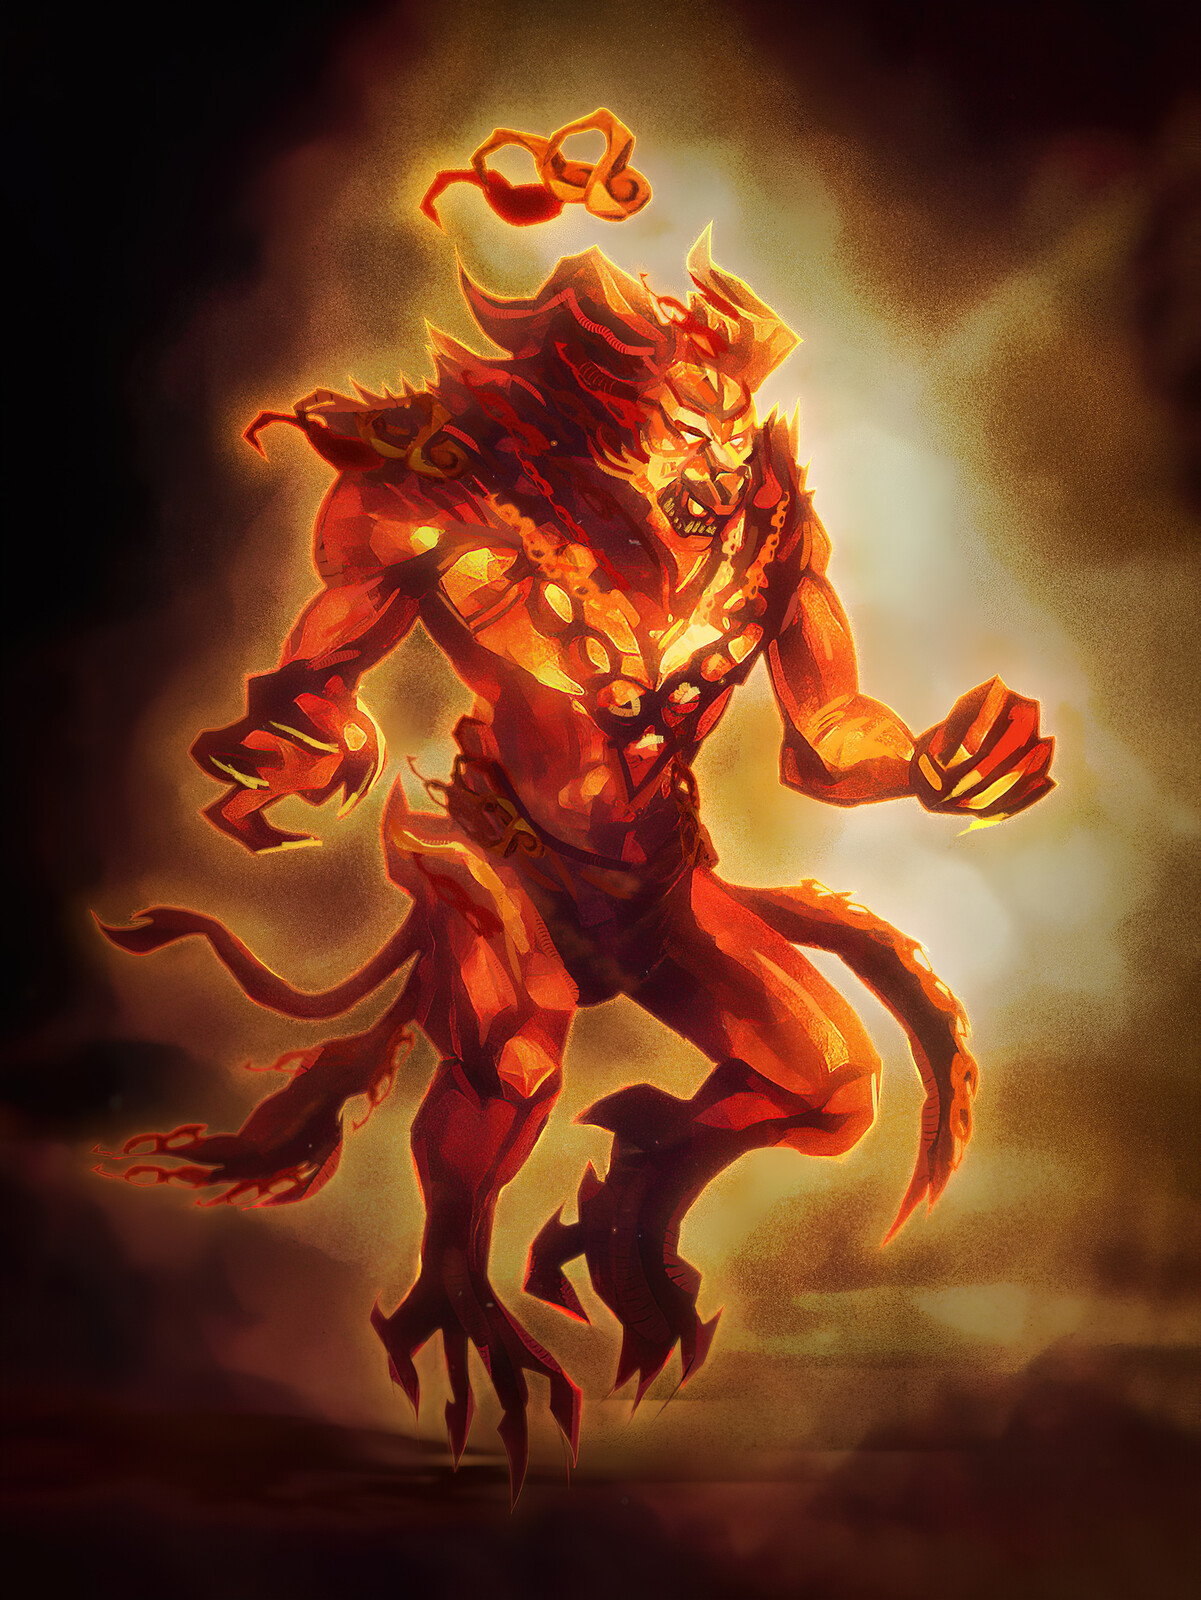 🔥 Ifrit 🔥